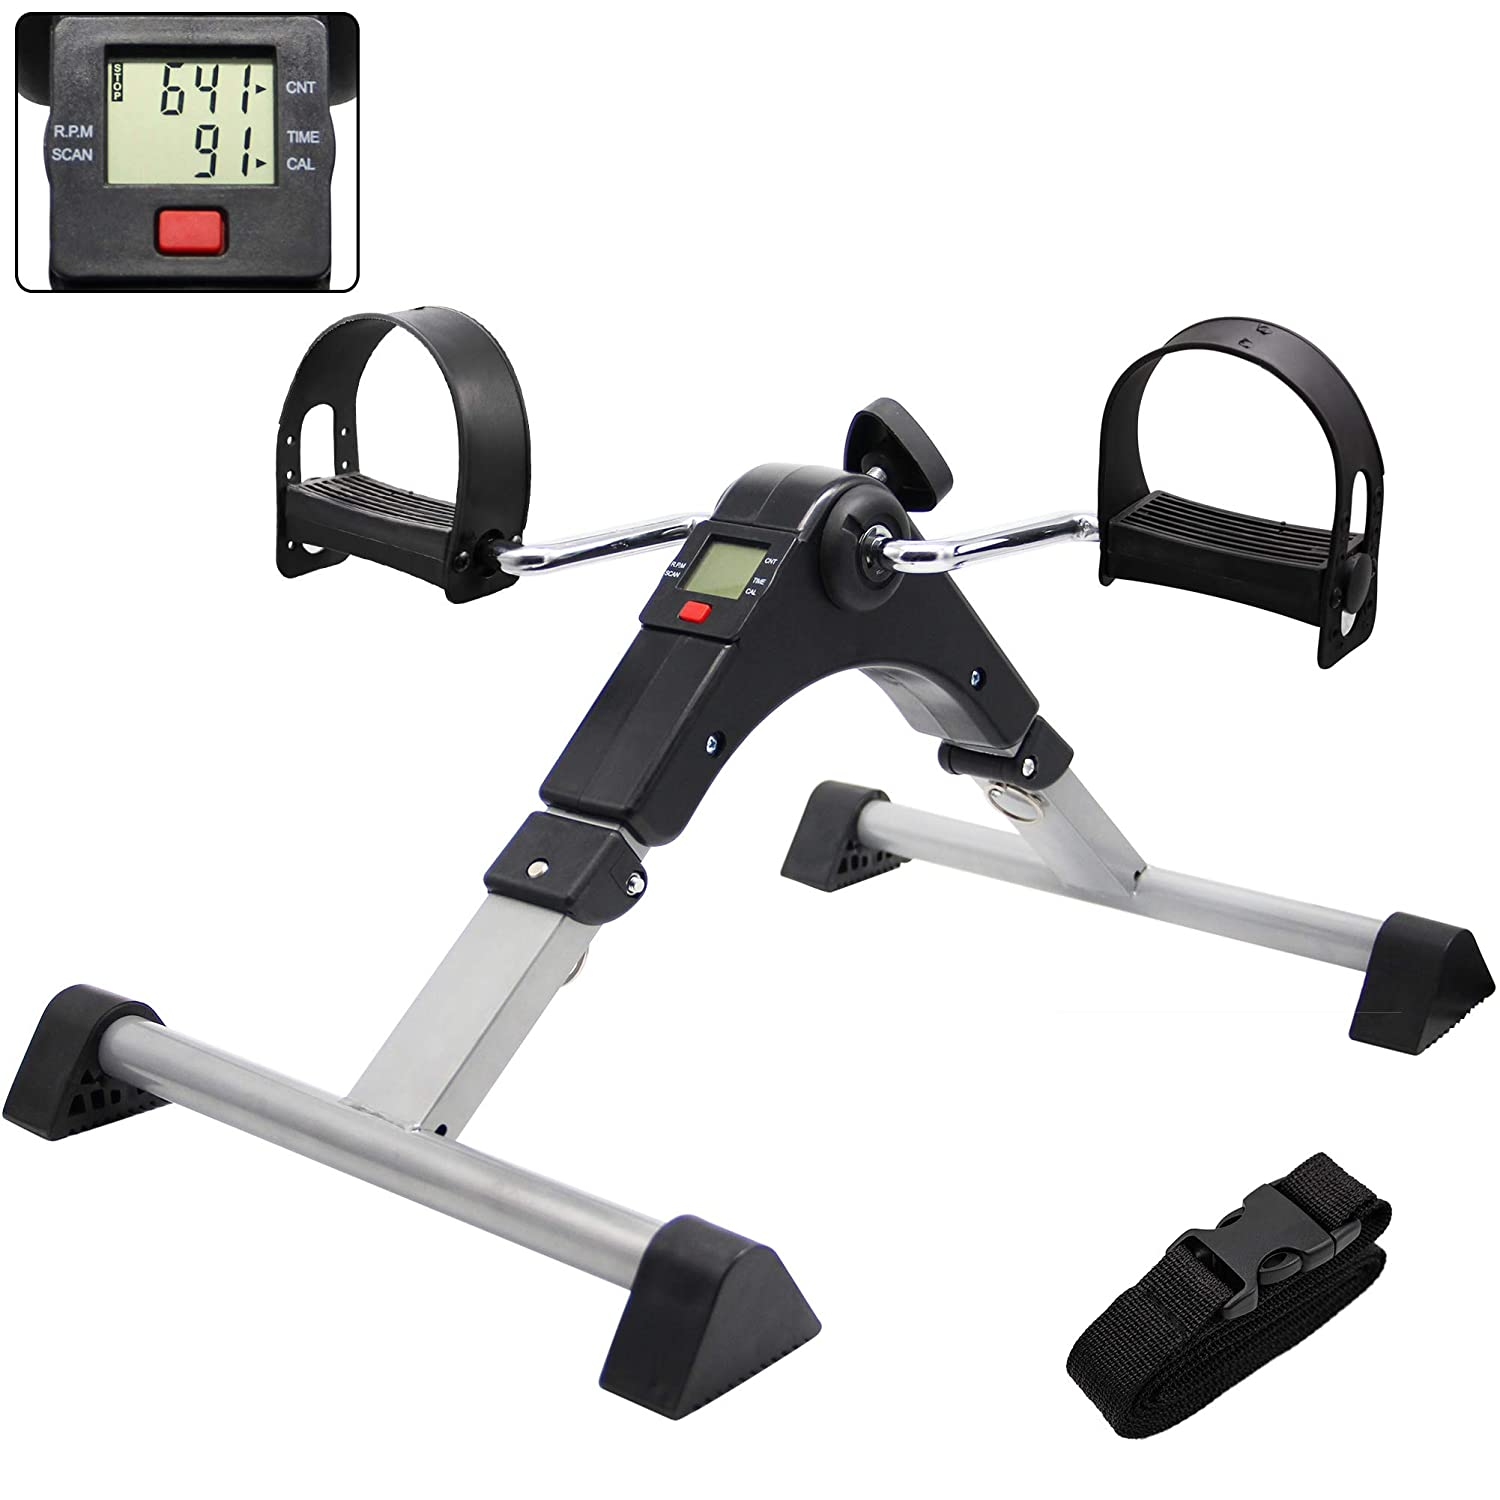 Limited time for free shipping Hausse Folding Exercise Peddler Portable El Sale item Exerciser Pedal with